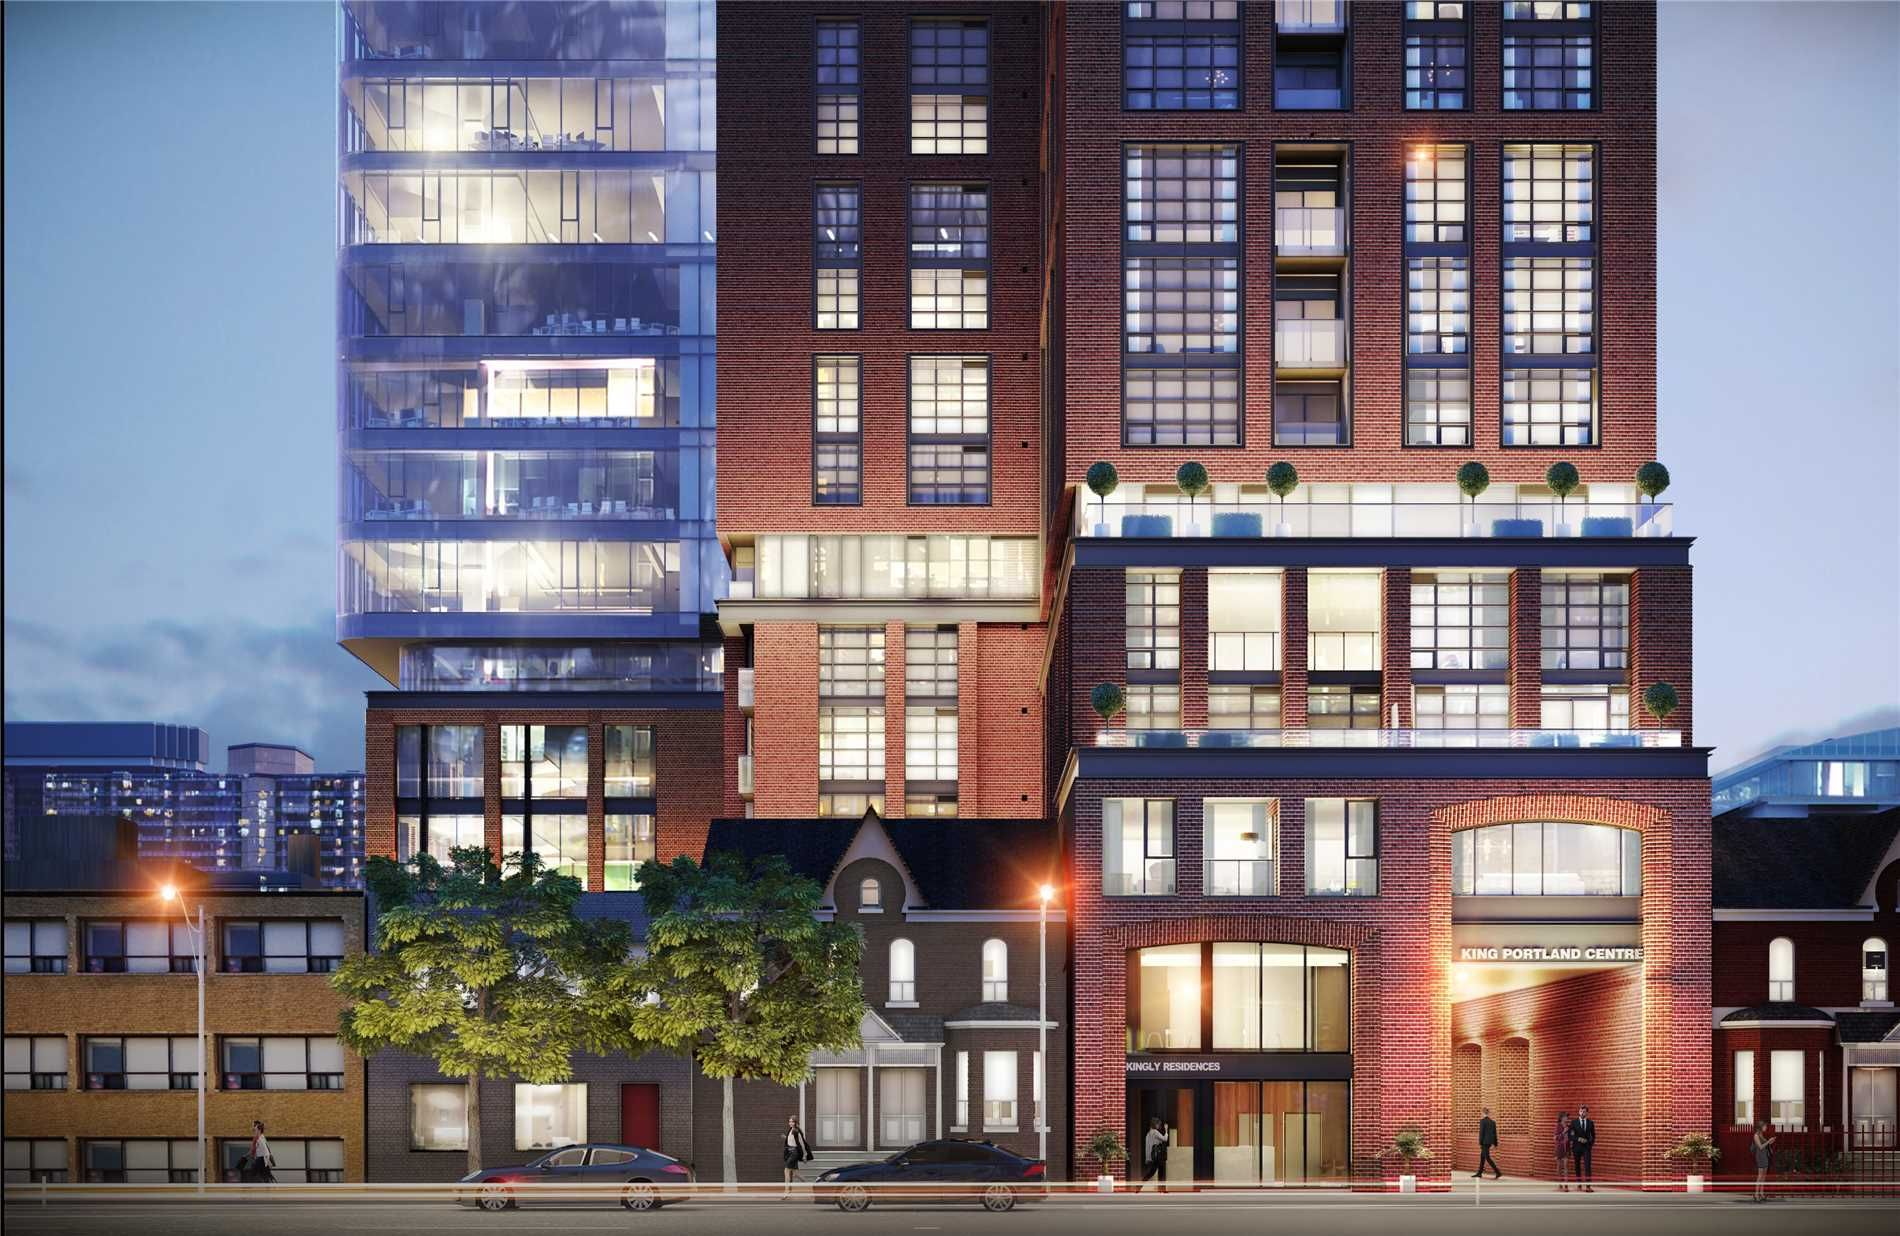 Concept art for Kingly Residences and King Portland Centre showing red-brick building, blue glass and streets.